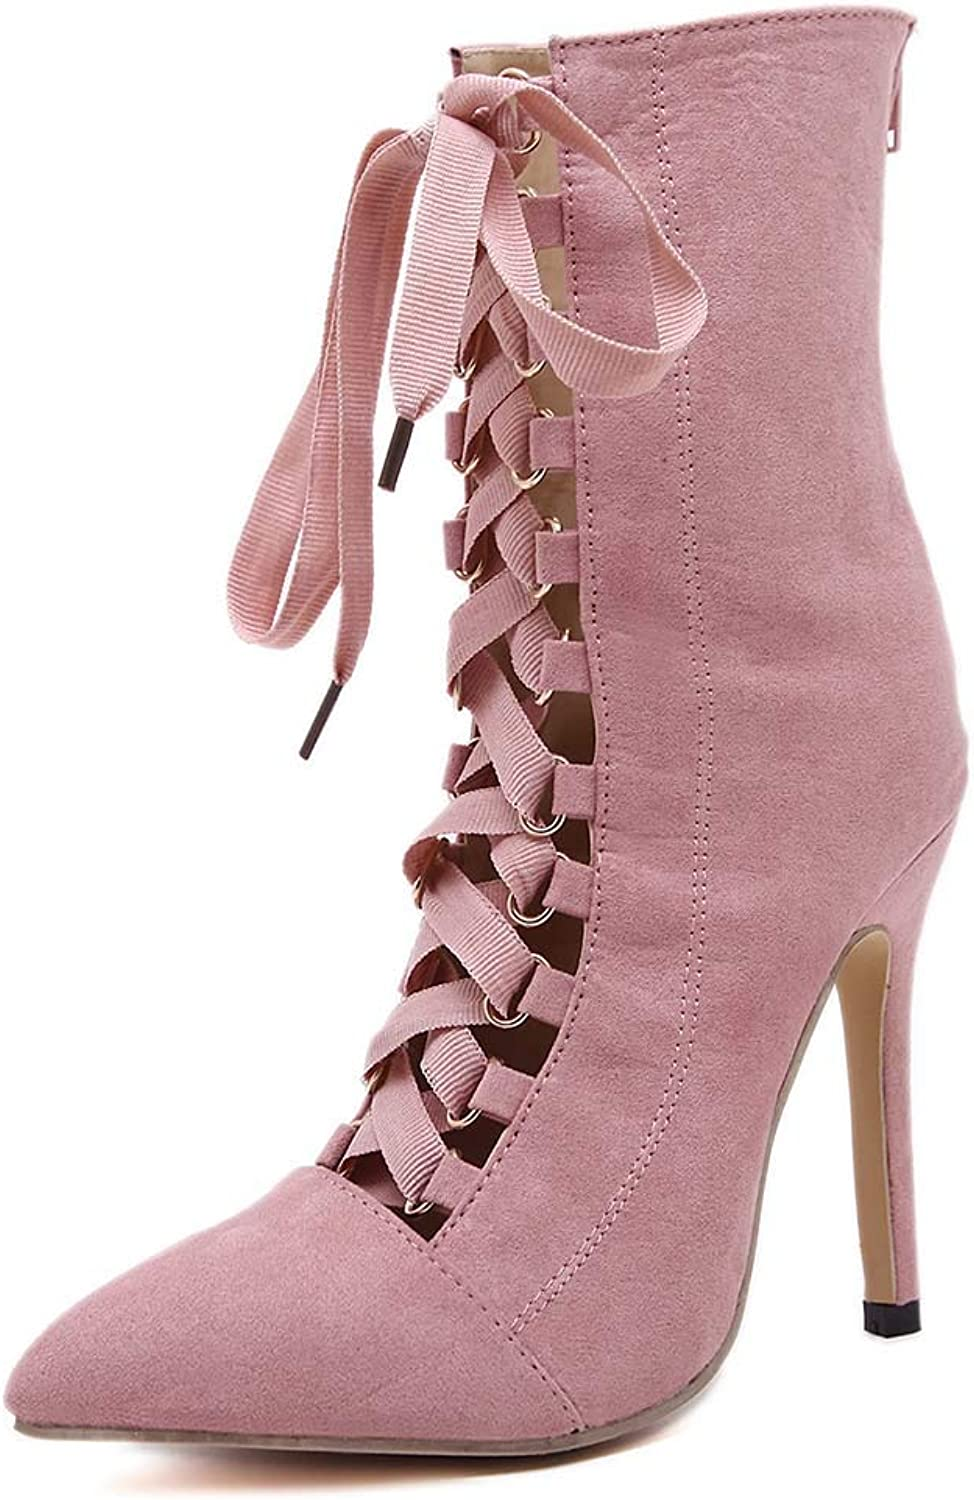 Womens high Heel shoes Pointed Suede Stiletto in The mid Boots Cross Straps Fashion Sandals